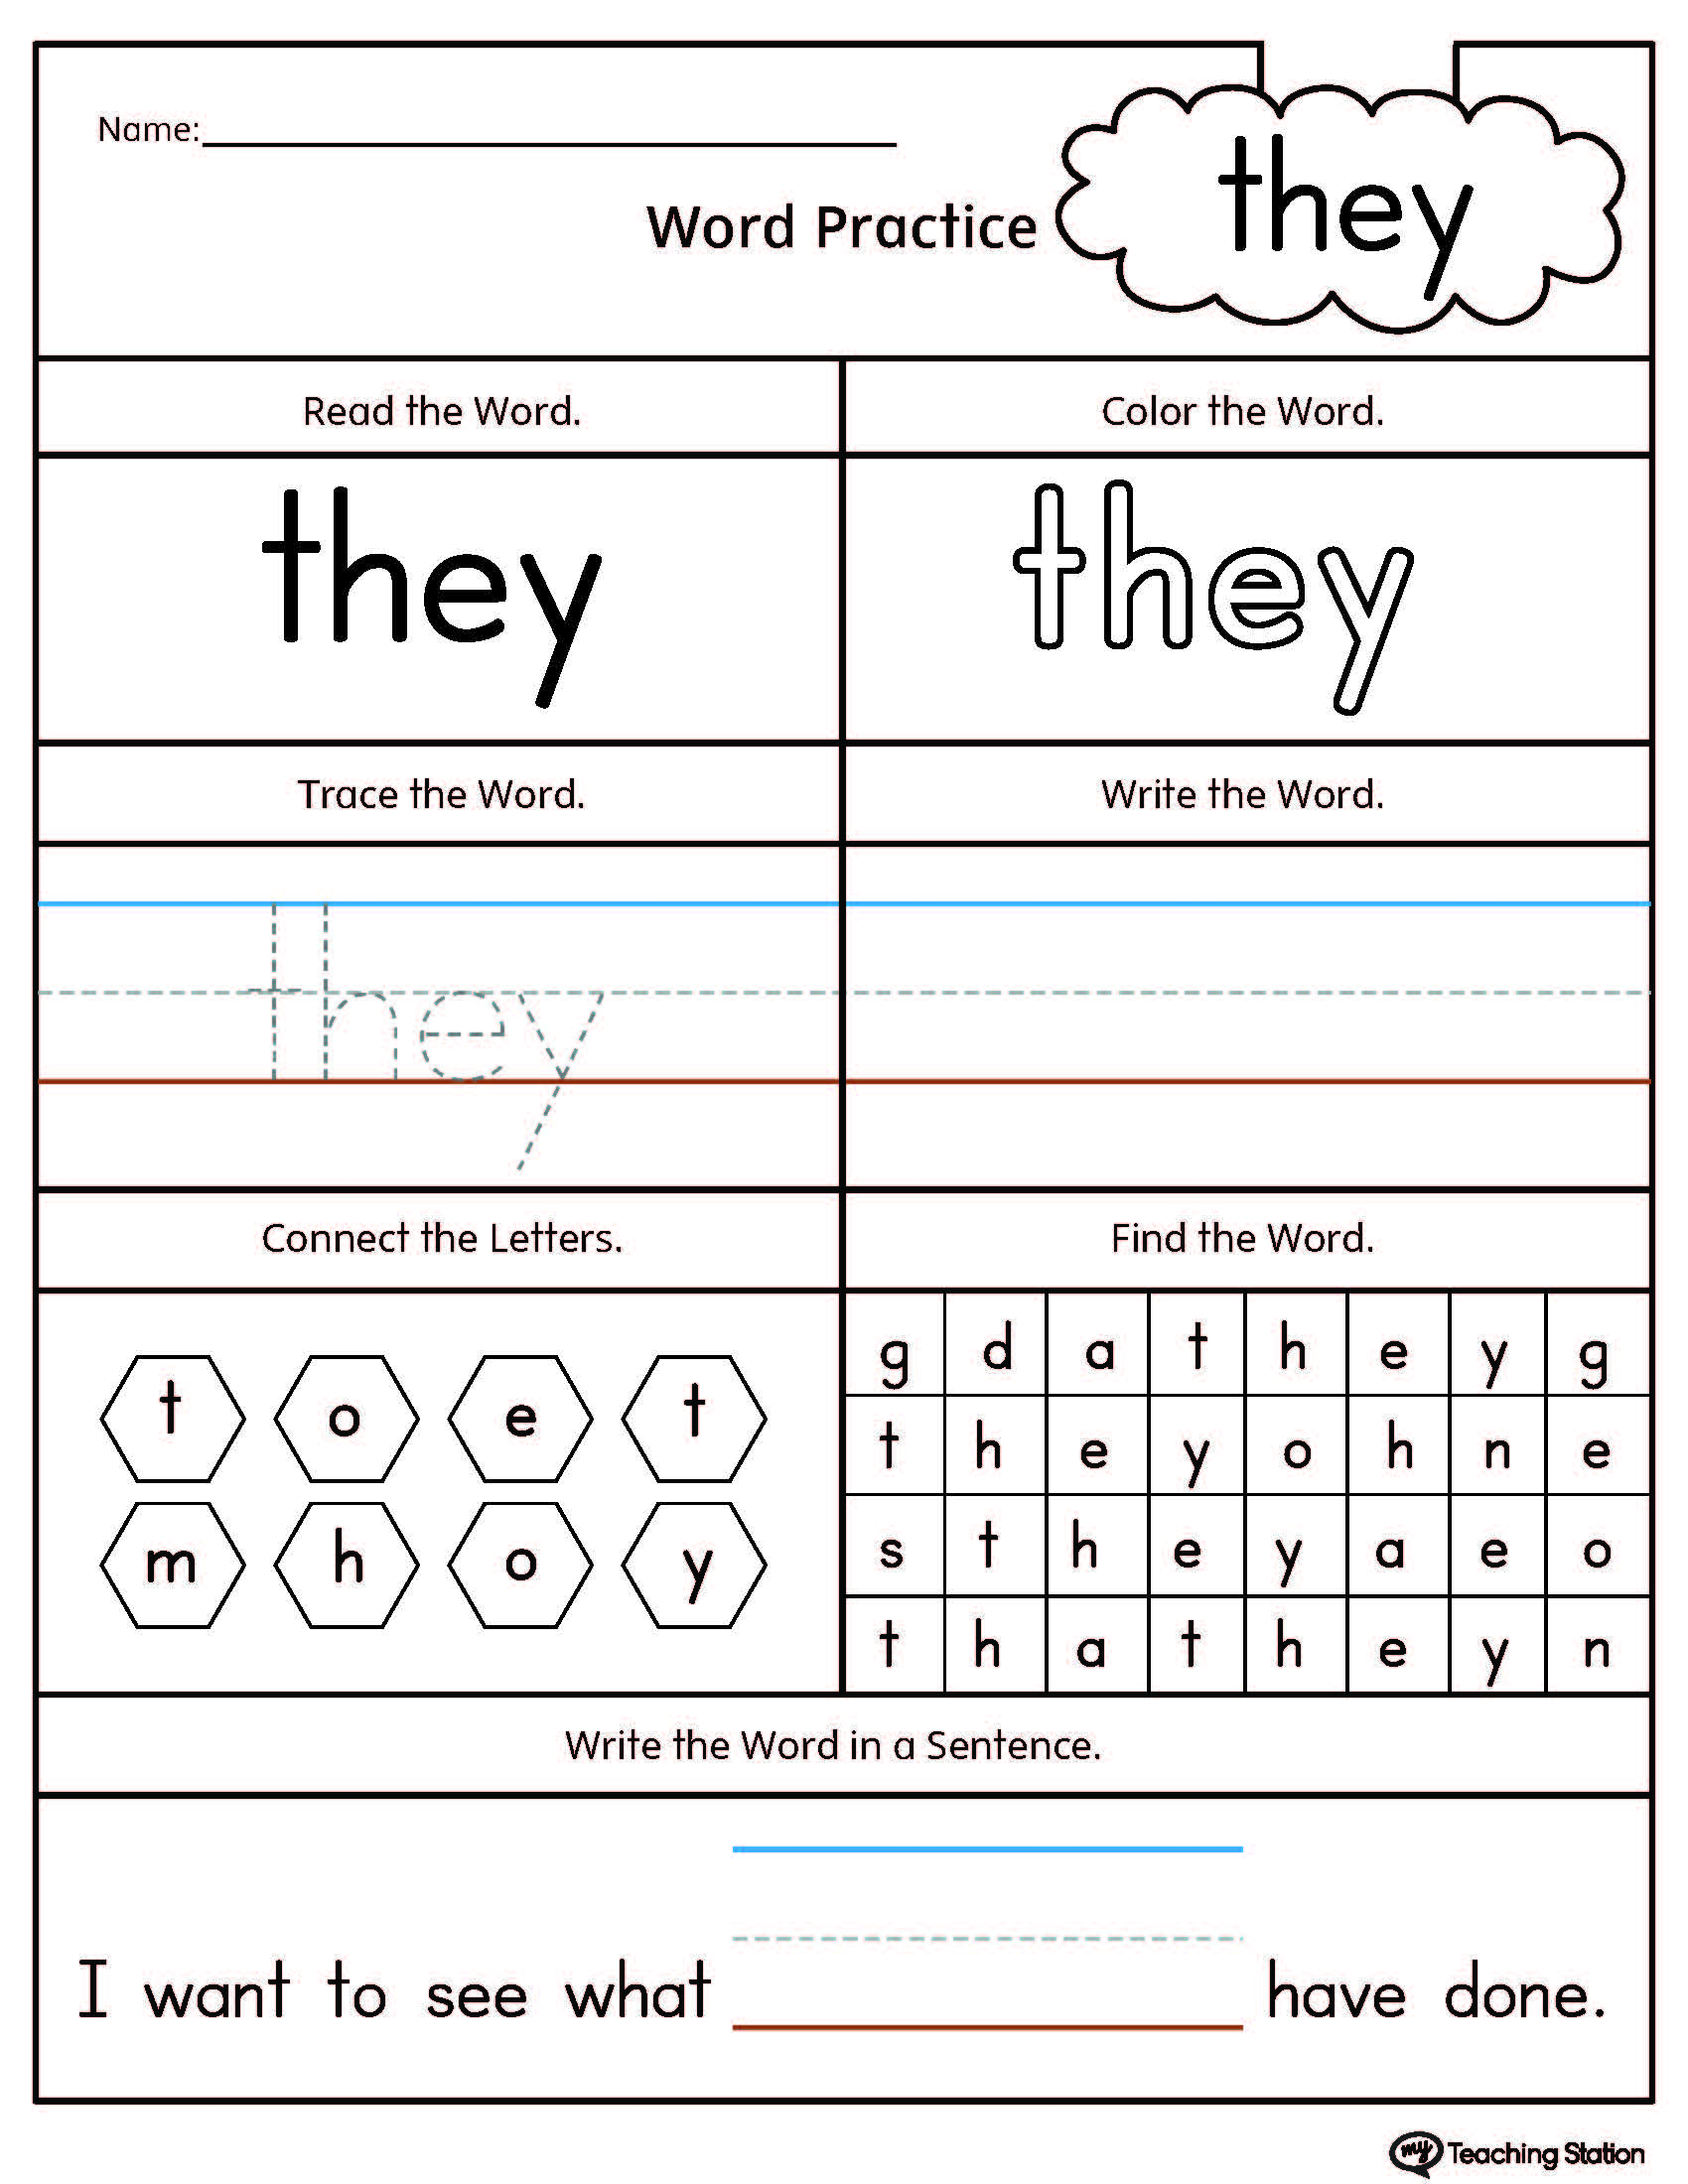 Worksheets Free Printable Sight Word Worksheets high frequency words printable worksheets myteachingstation com word they worksheet